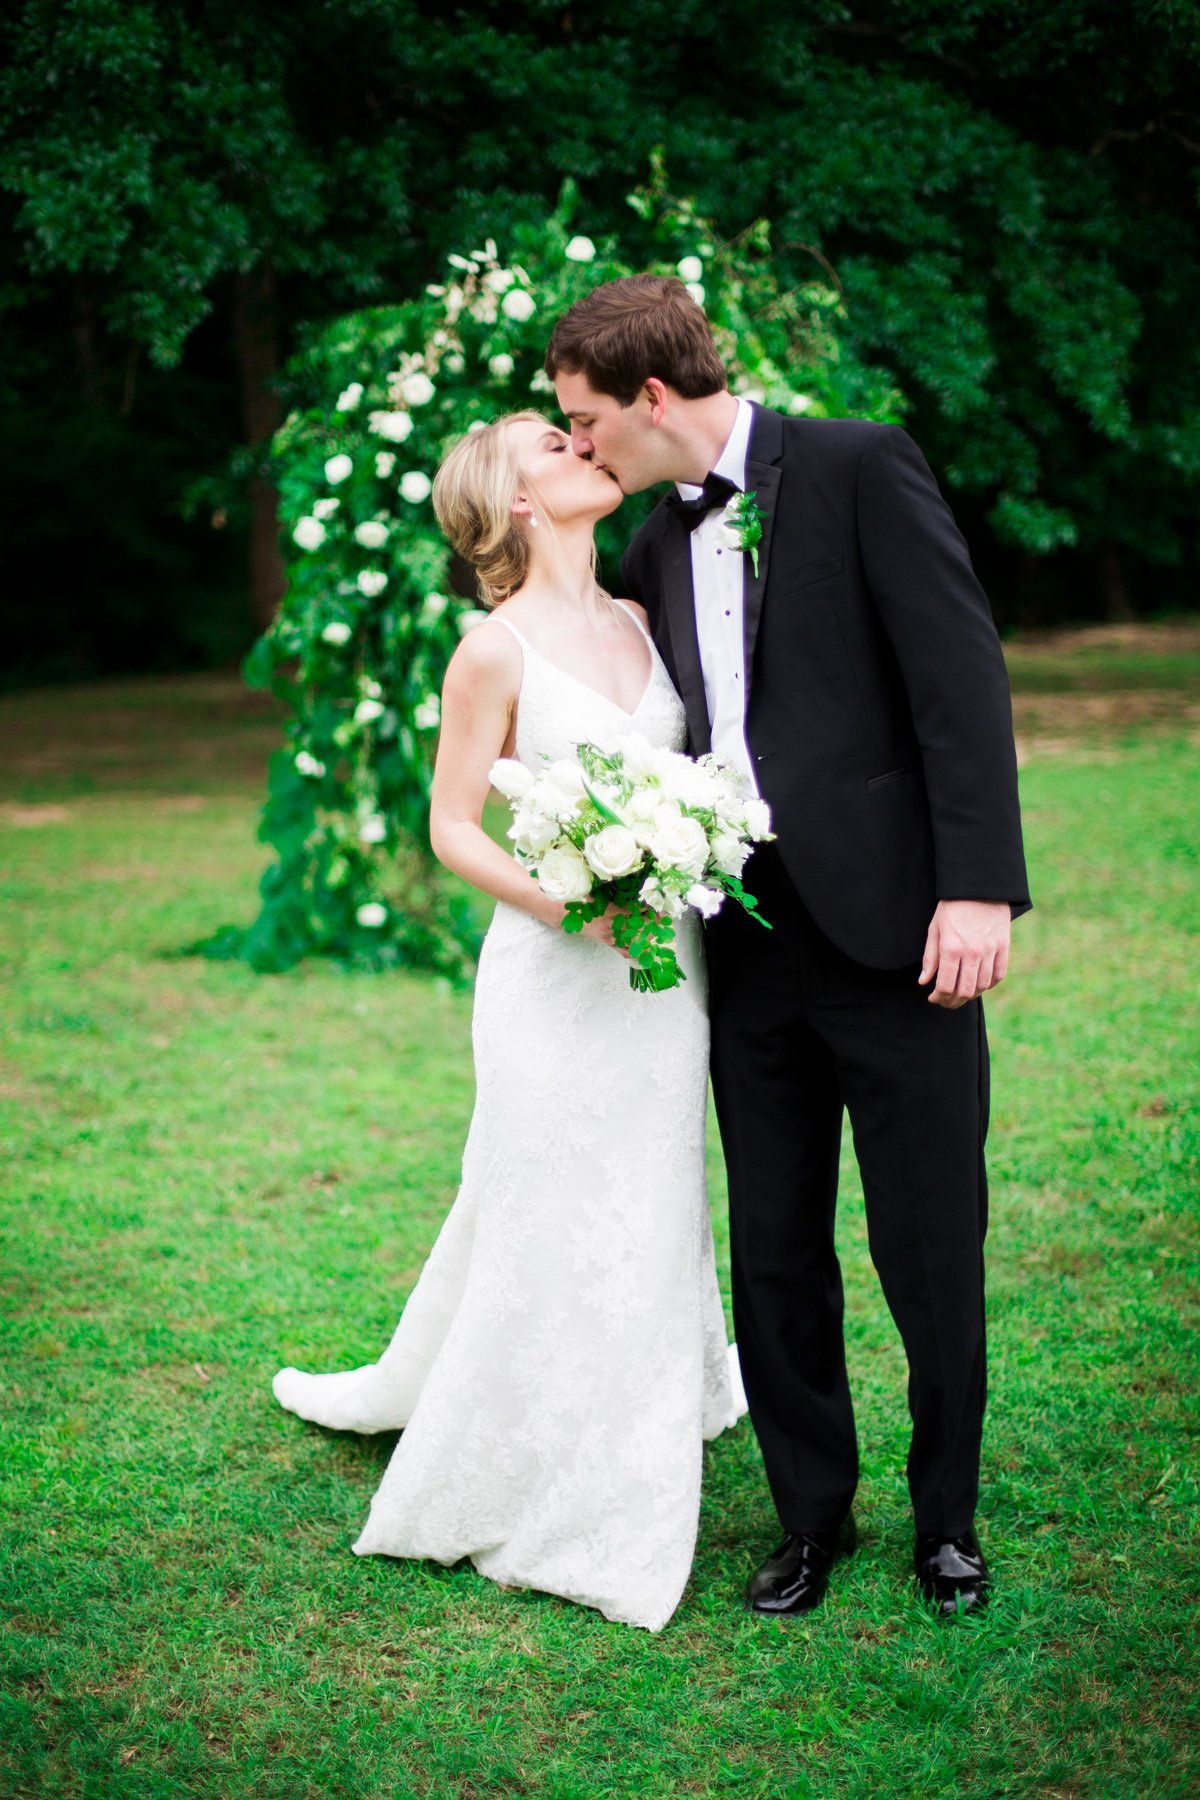 Windwood_Equestrian_Arden_Alabama_Birmingham_Outdoor_wedding259